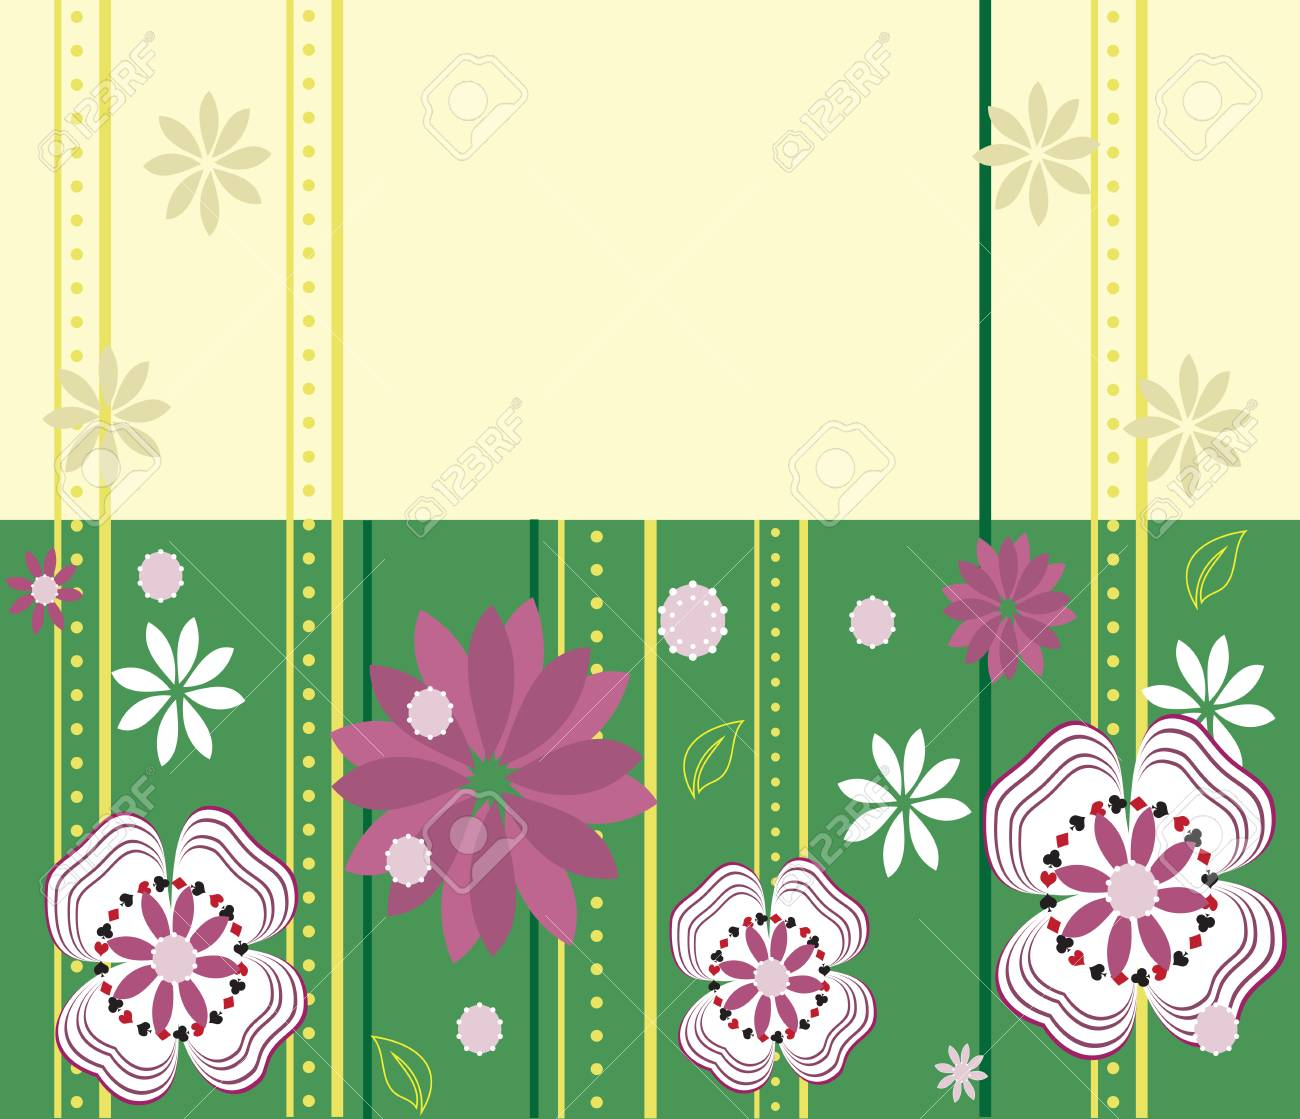 Vintage invitation card with elegant retro abstract floral design vector vintage invitation card with elegant retro abstract floral design white and purple flowers on yellow and green stopboris Images